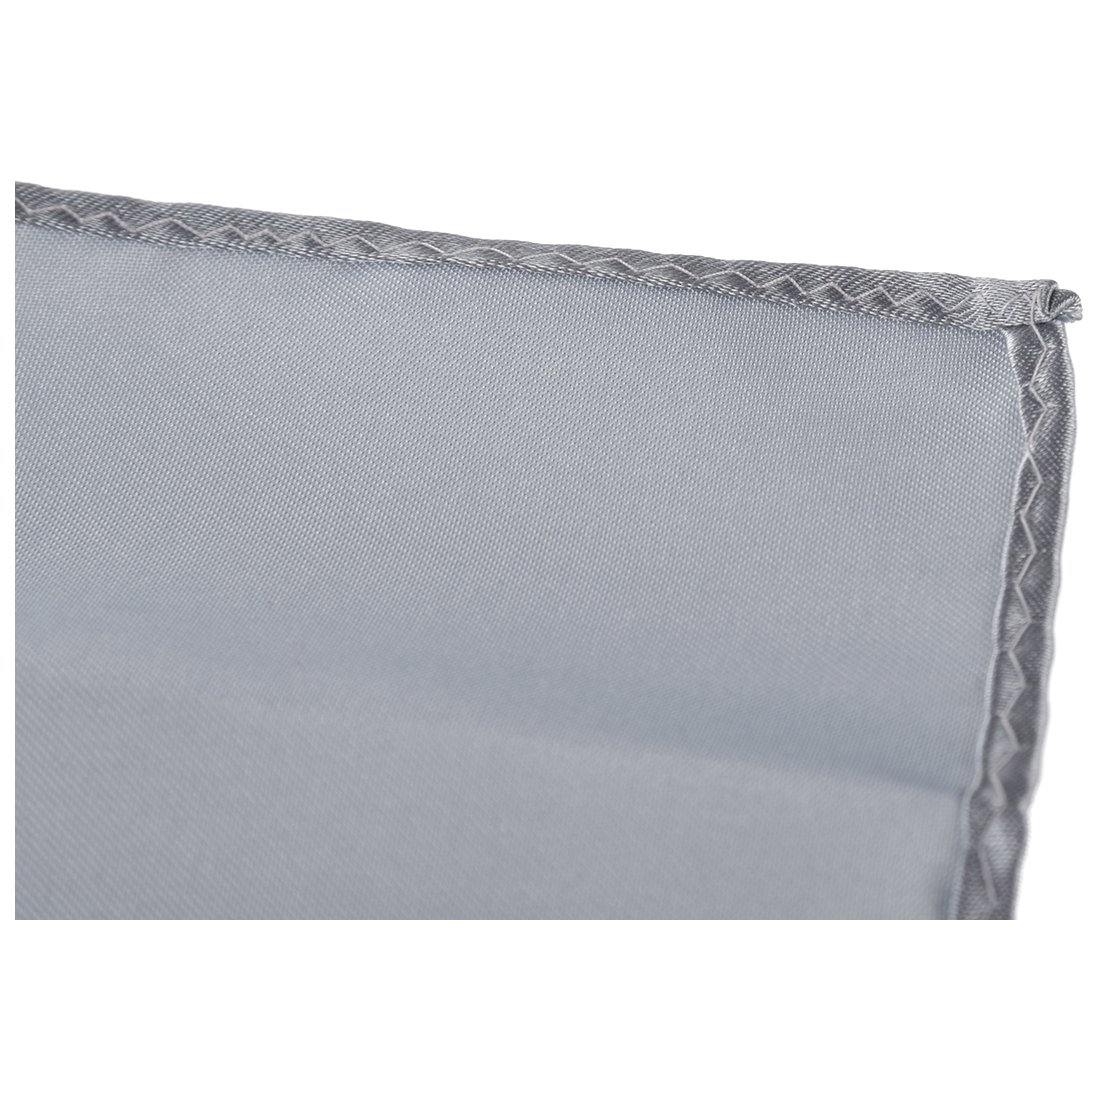 R Fazzoletto da Taschino da Uomo Hanky Plain Colour Wedding Party Square Hankerchief TOOGOO Azzurro